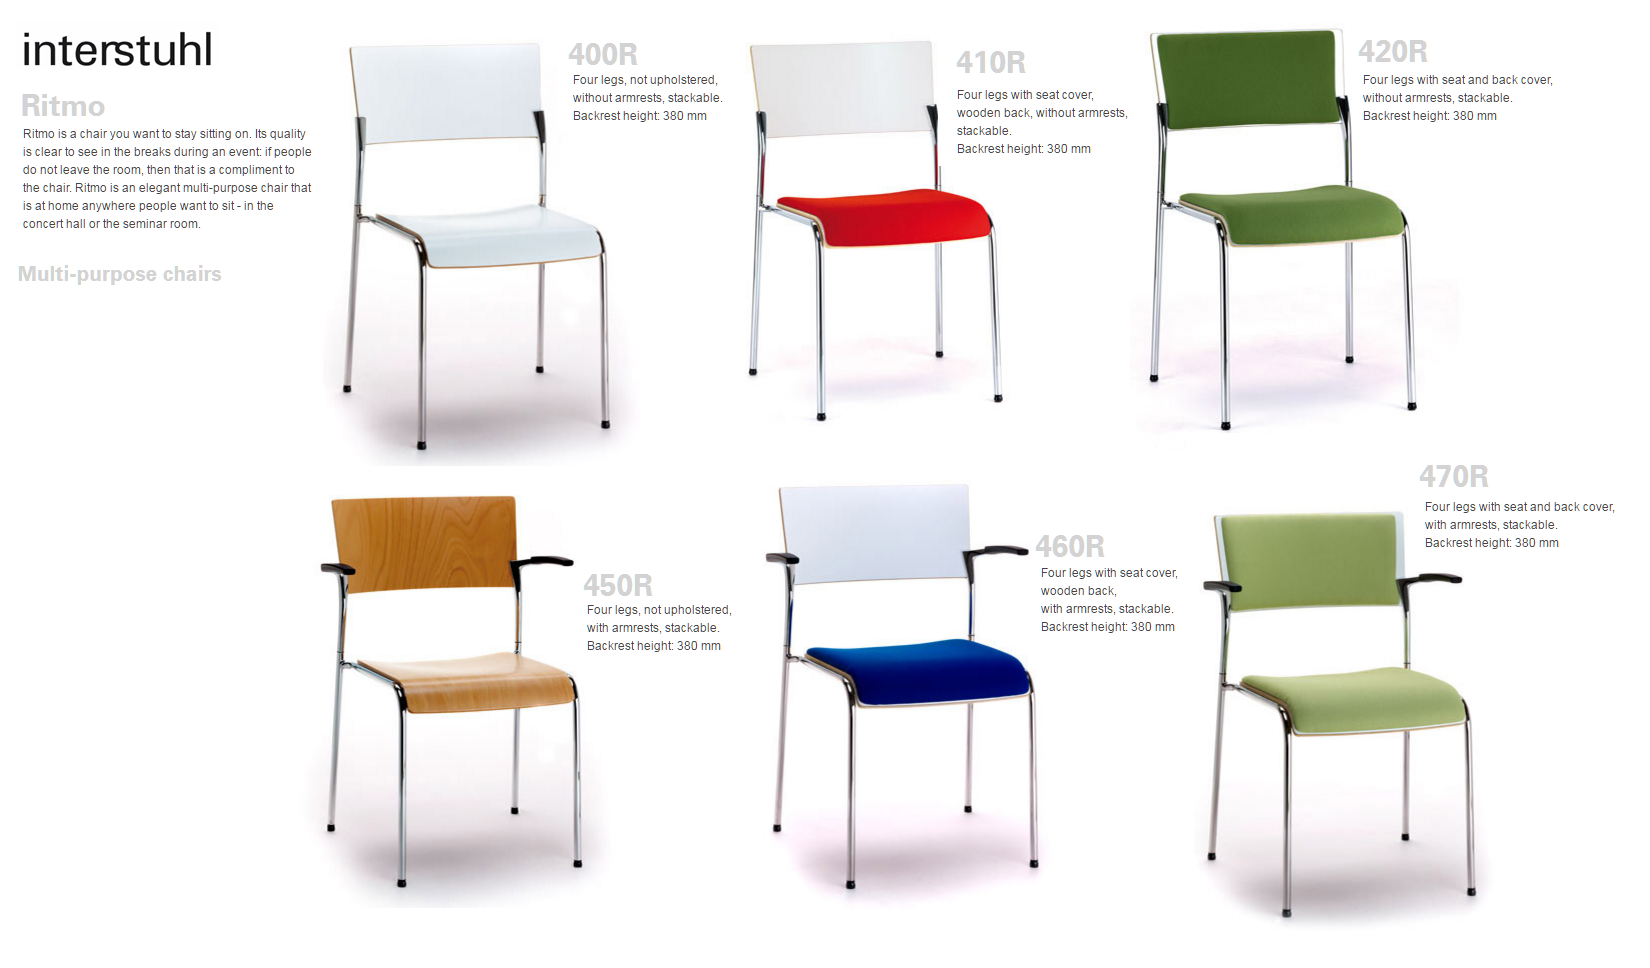 RITMO MULTI PURPOSE CHAIRS